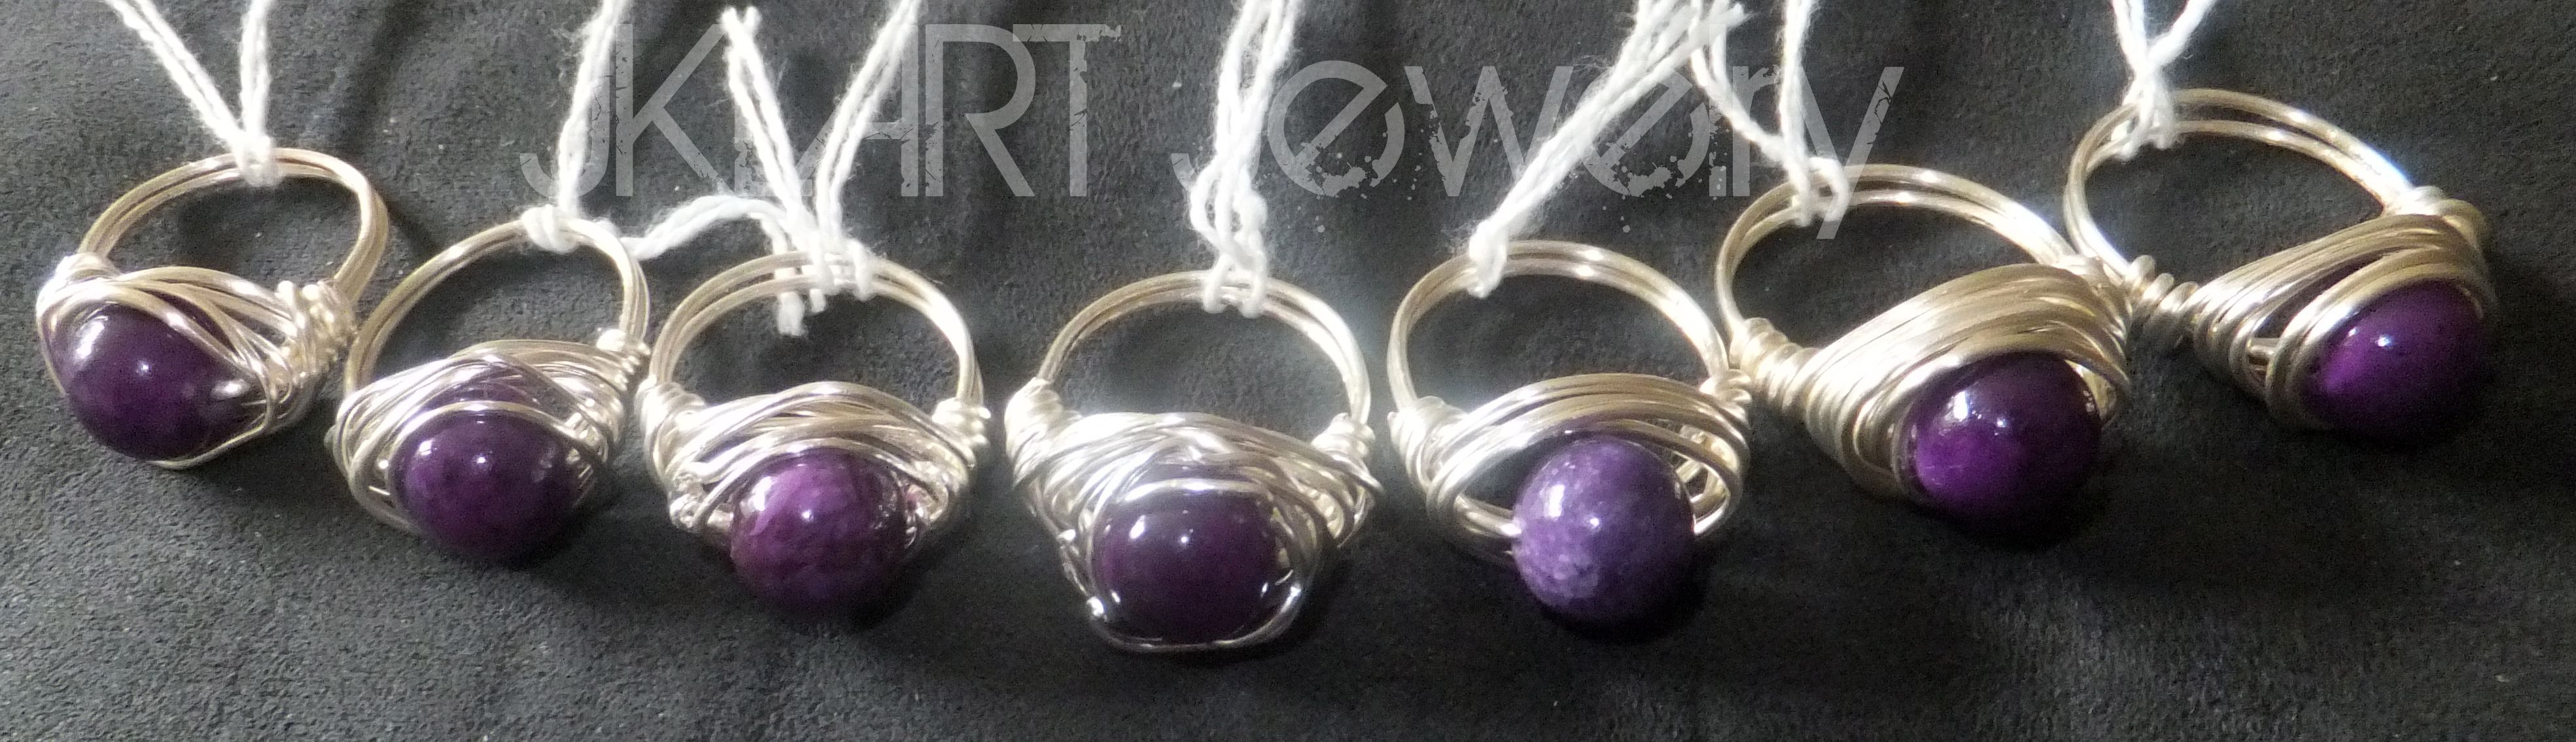 amethyst dyed quartzite wrapped in argentium (non-tarnishing) wire ...